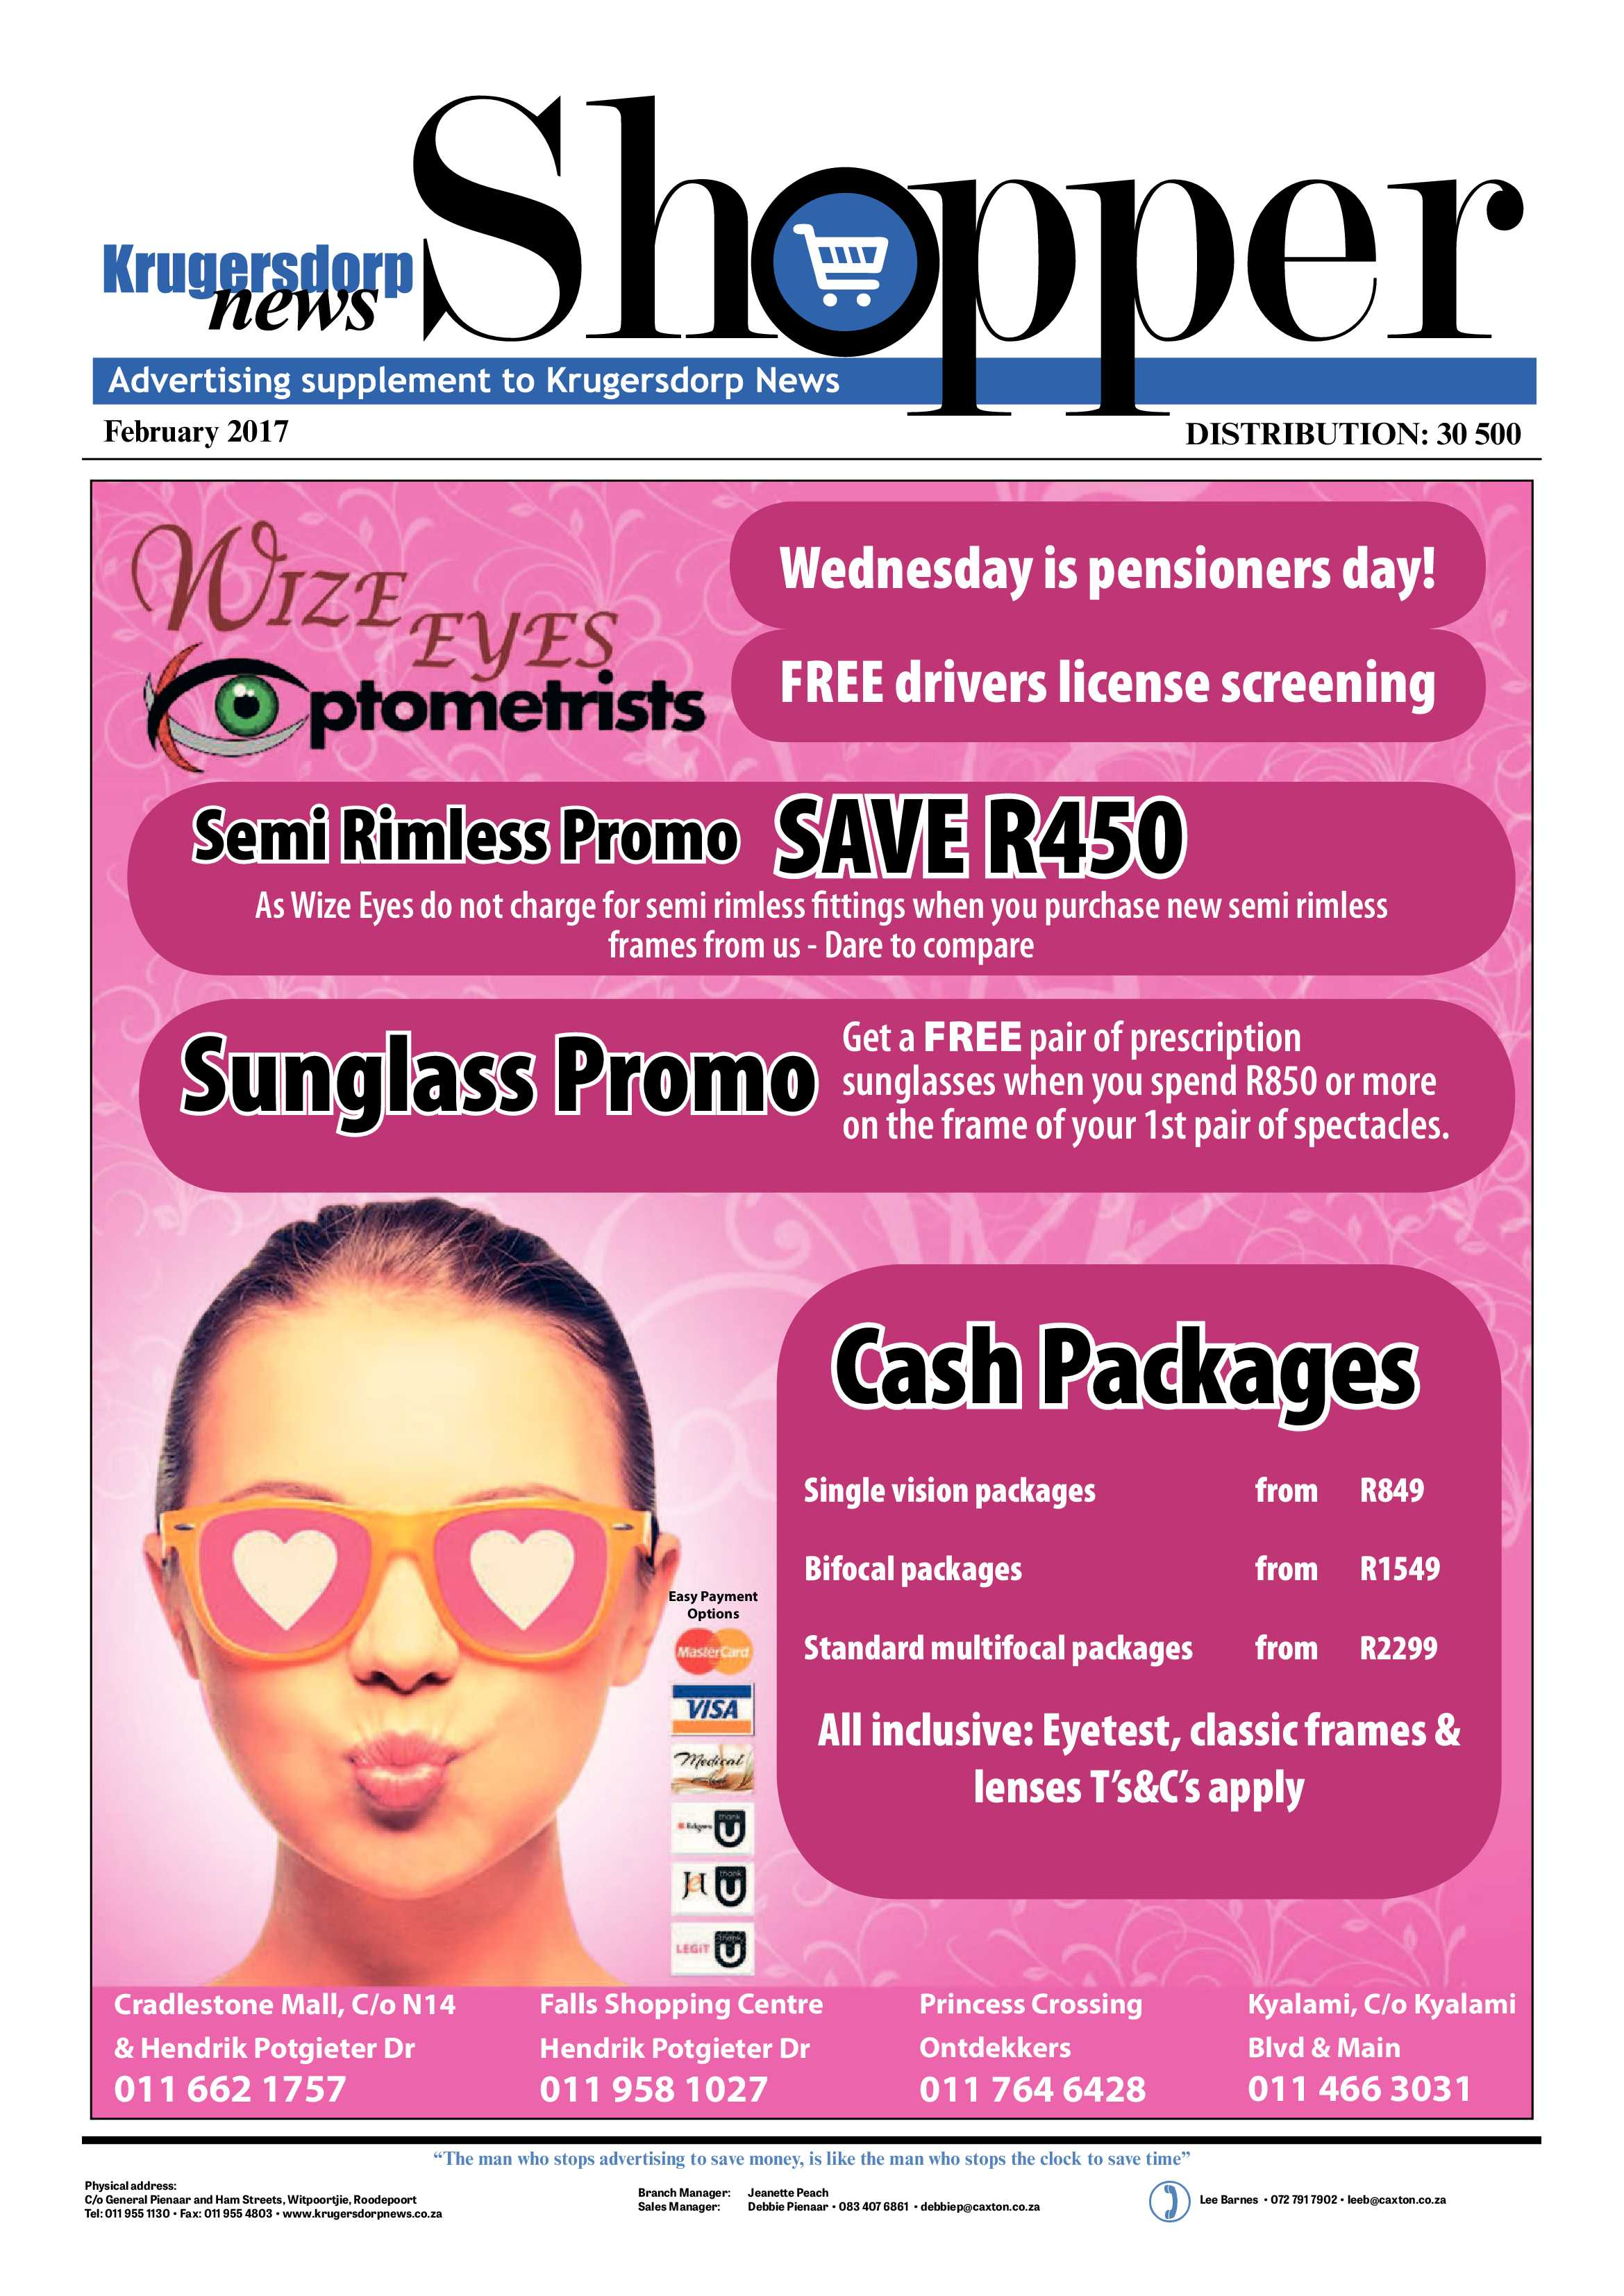 krugersdorp-news-shopper-february-2017-epapers-page-1